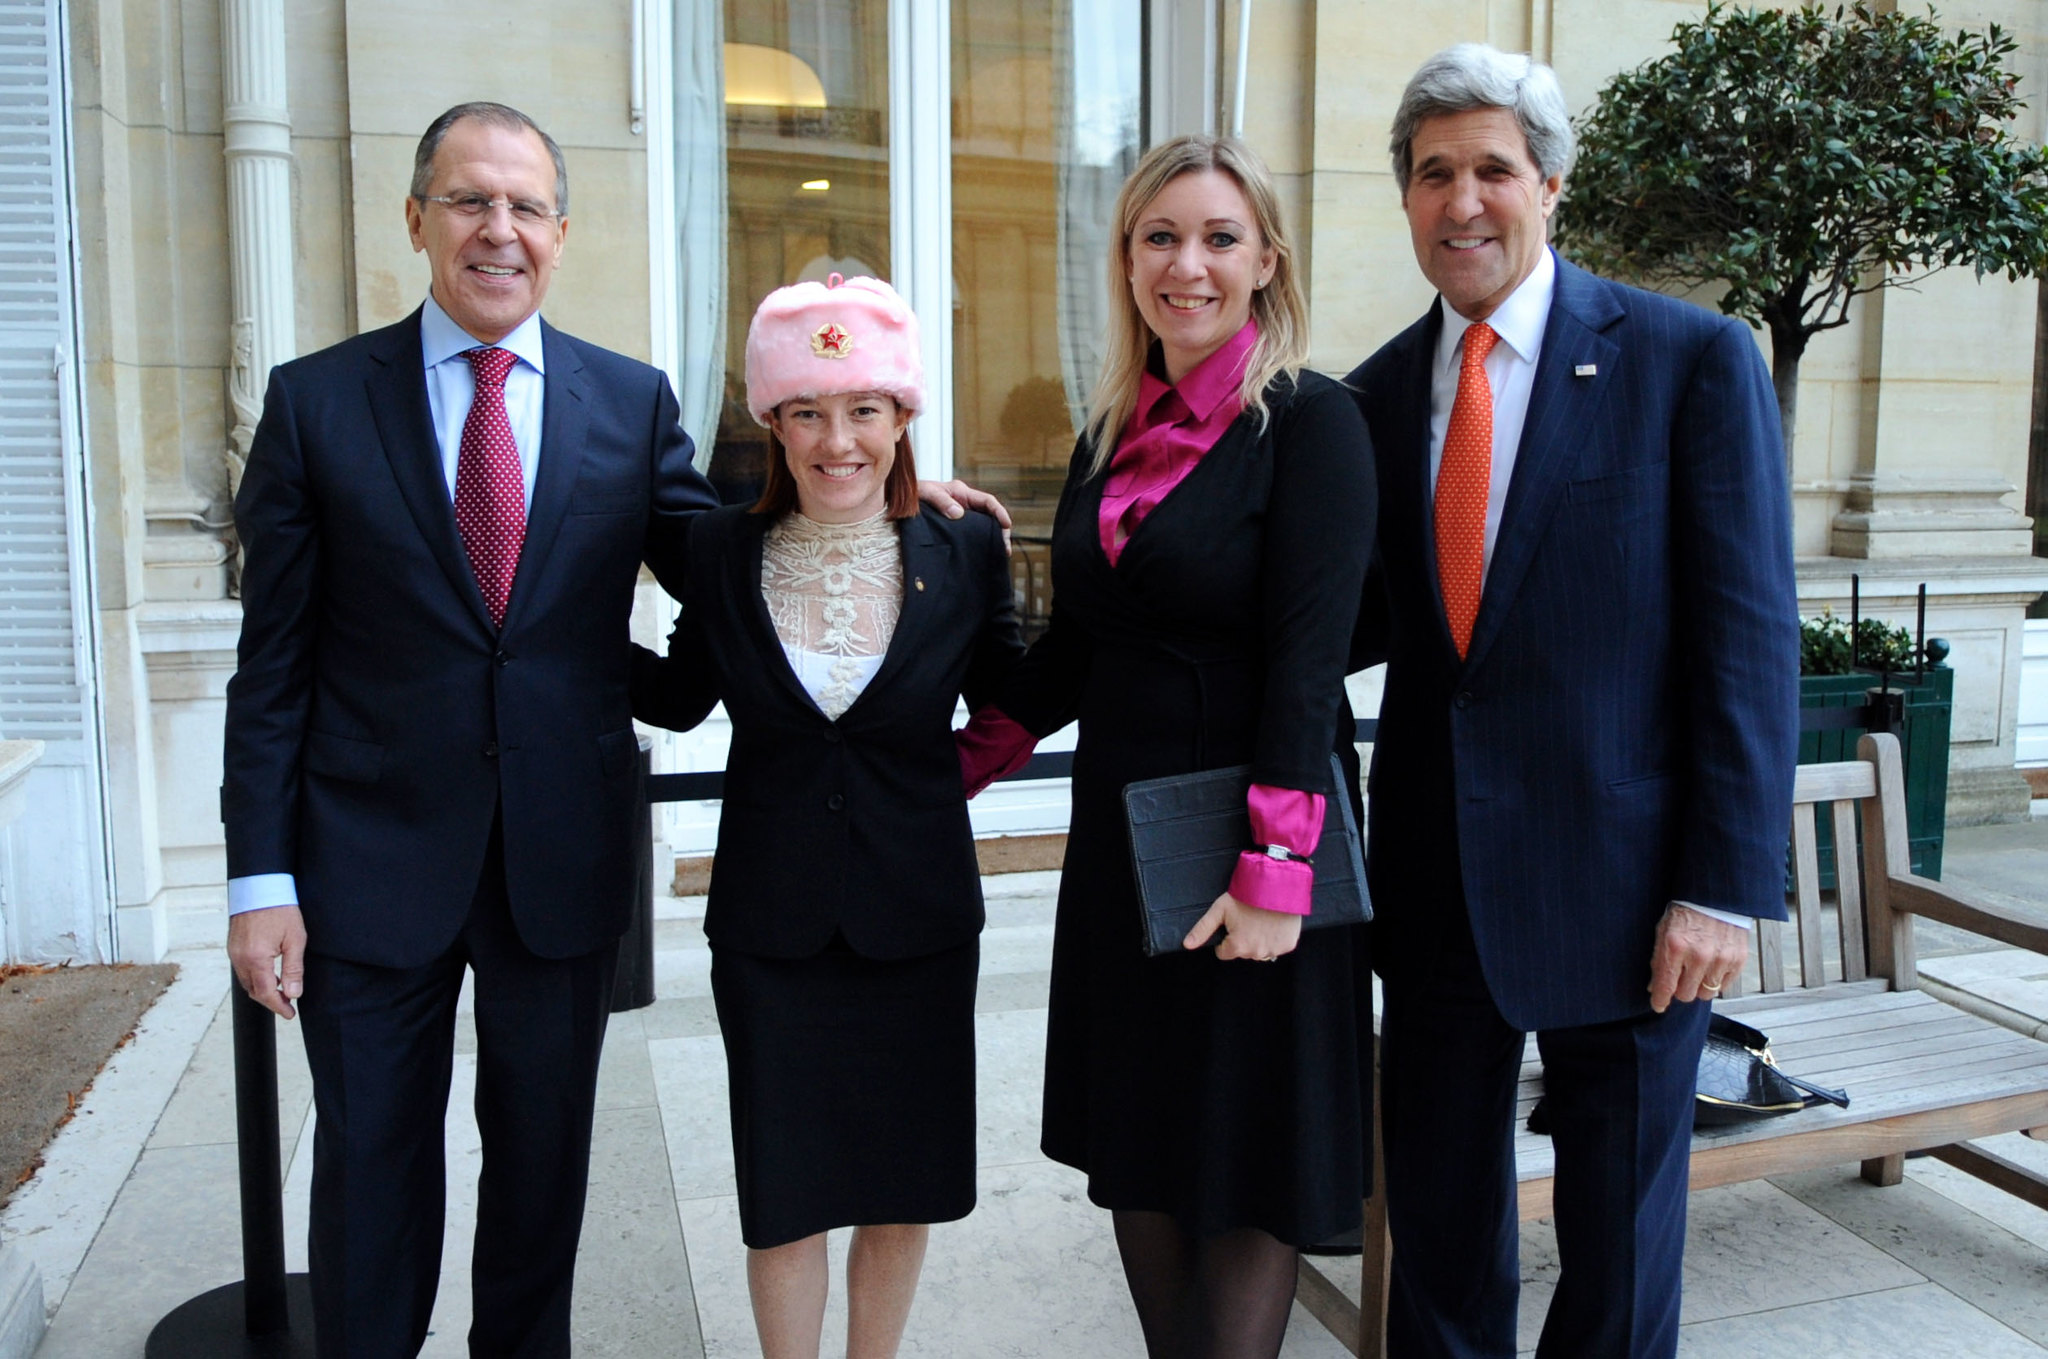 Resurfaced photo shows Biden press sec Jen Psaki wearing hammer and sickle hat with Russian official